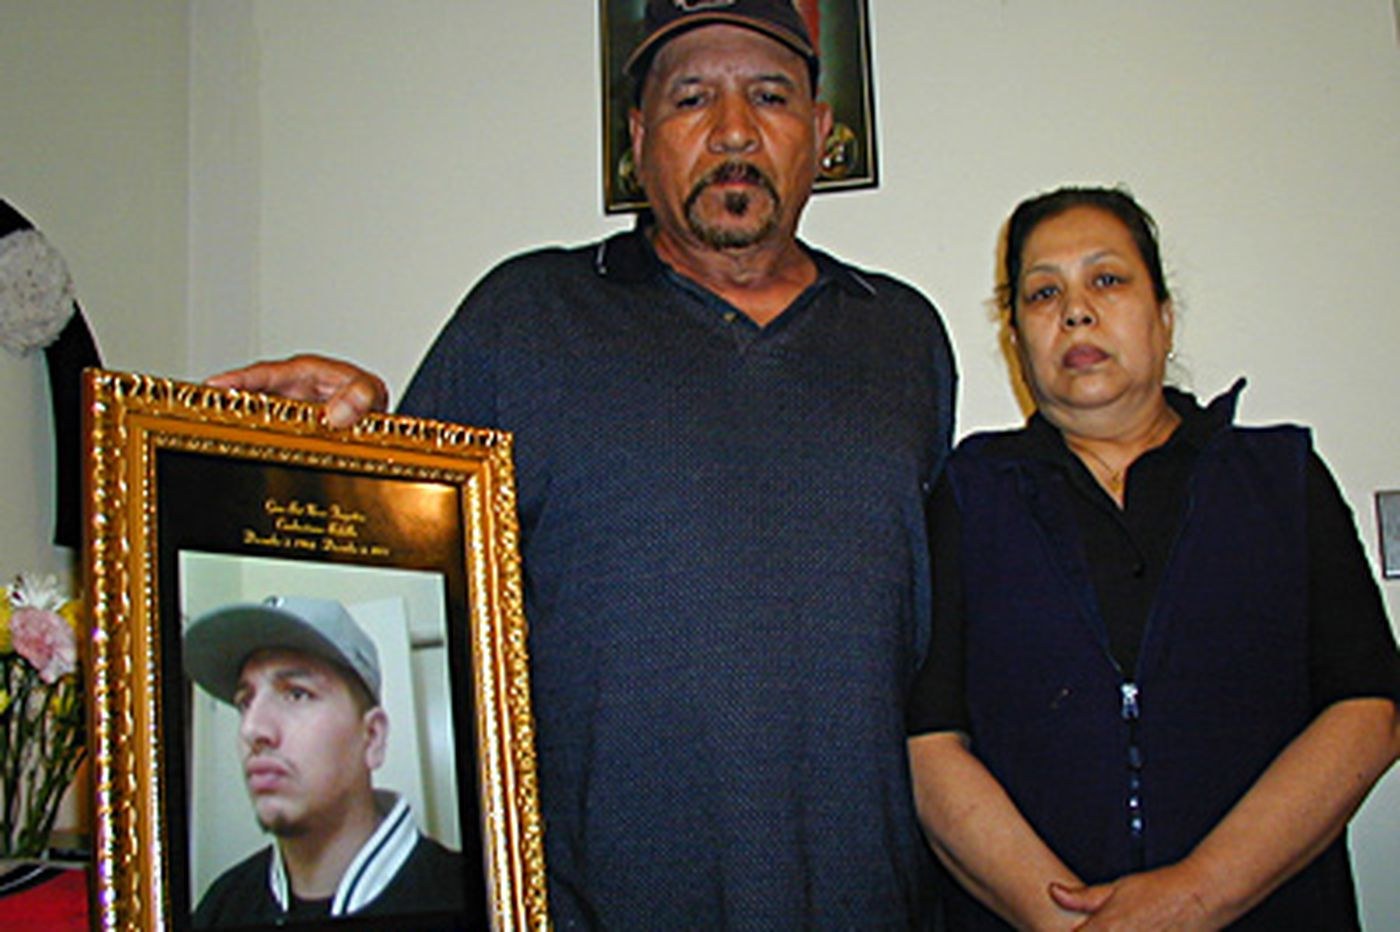 Chester County's Hispanic gangs may be small, but are still